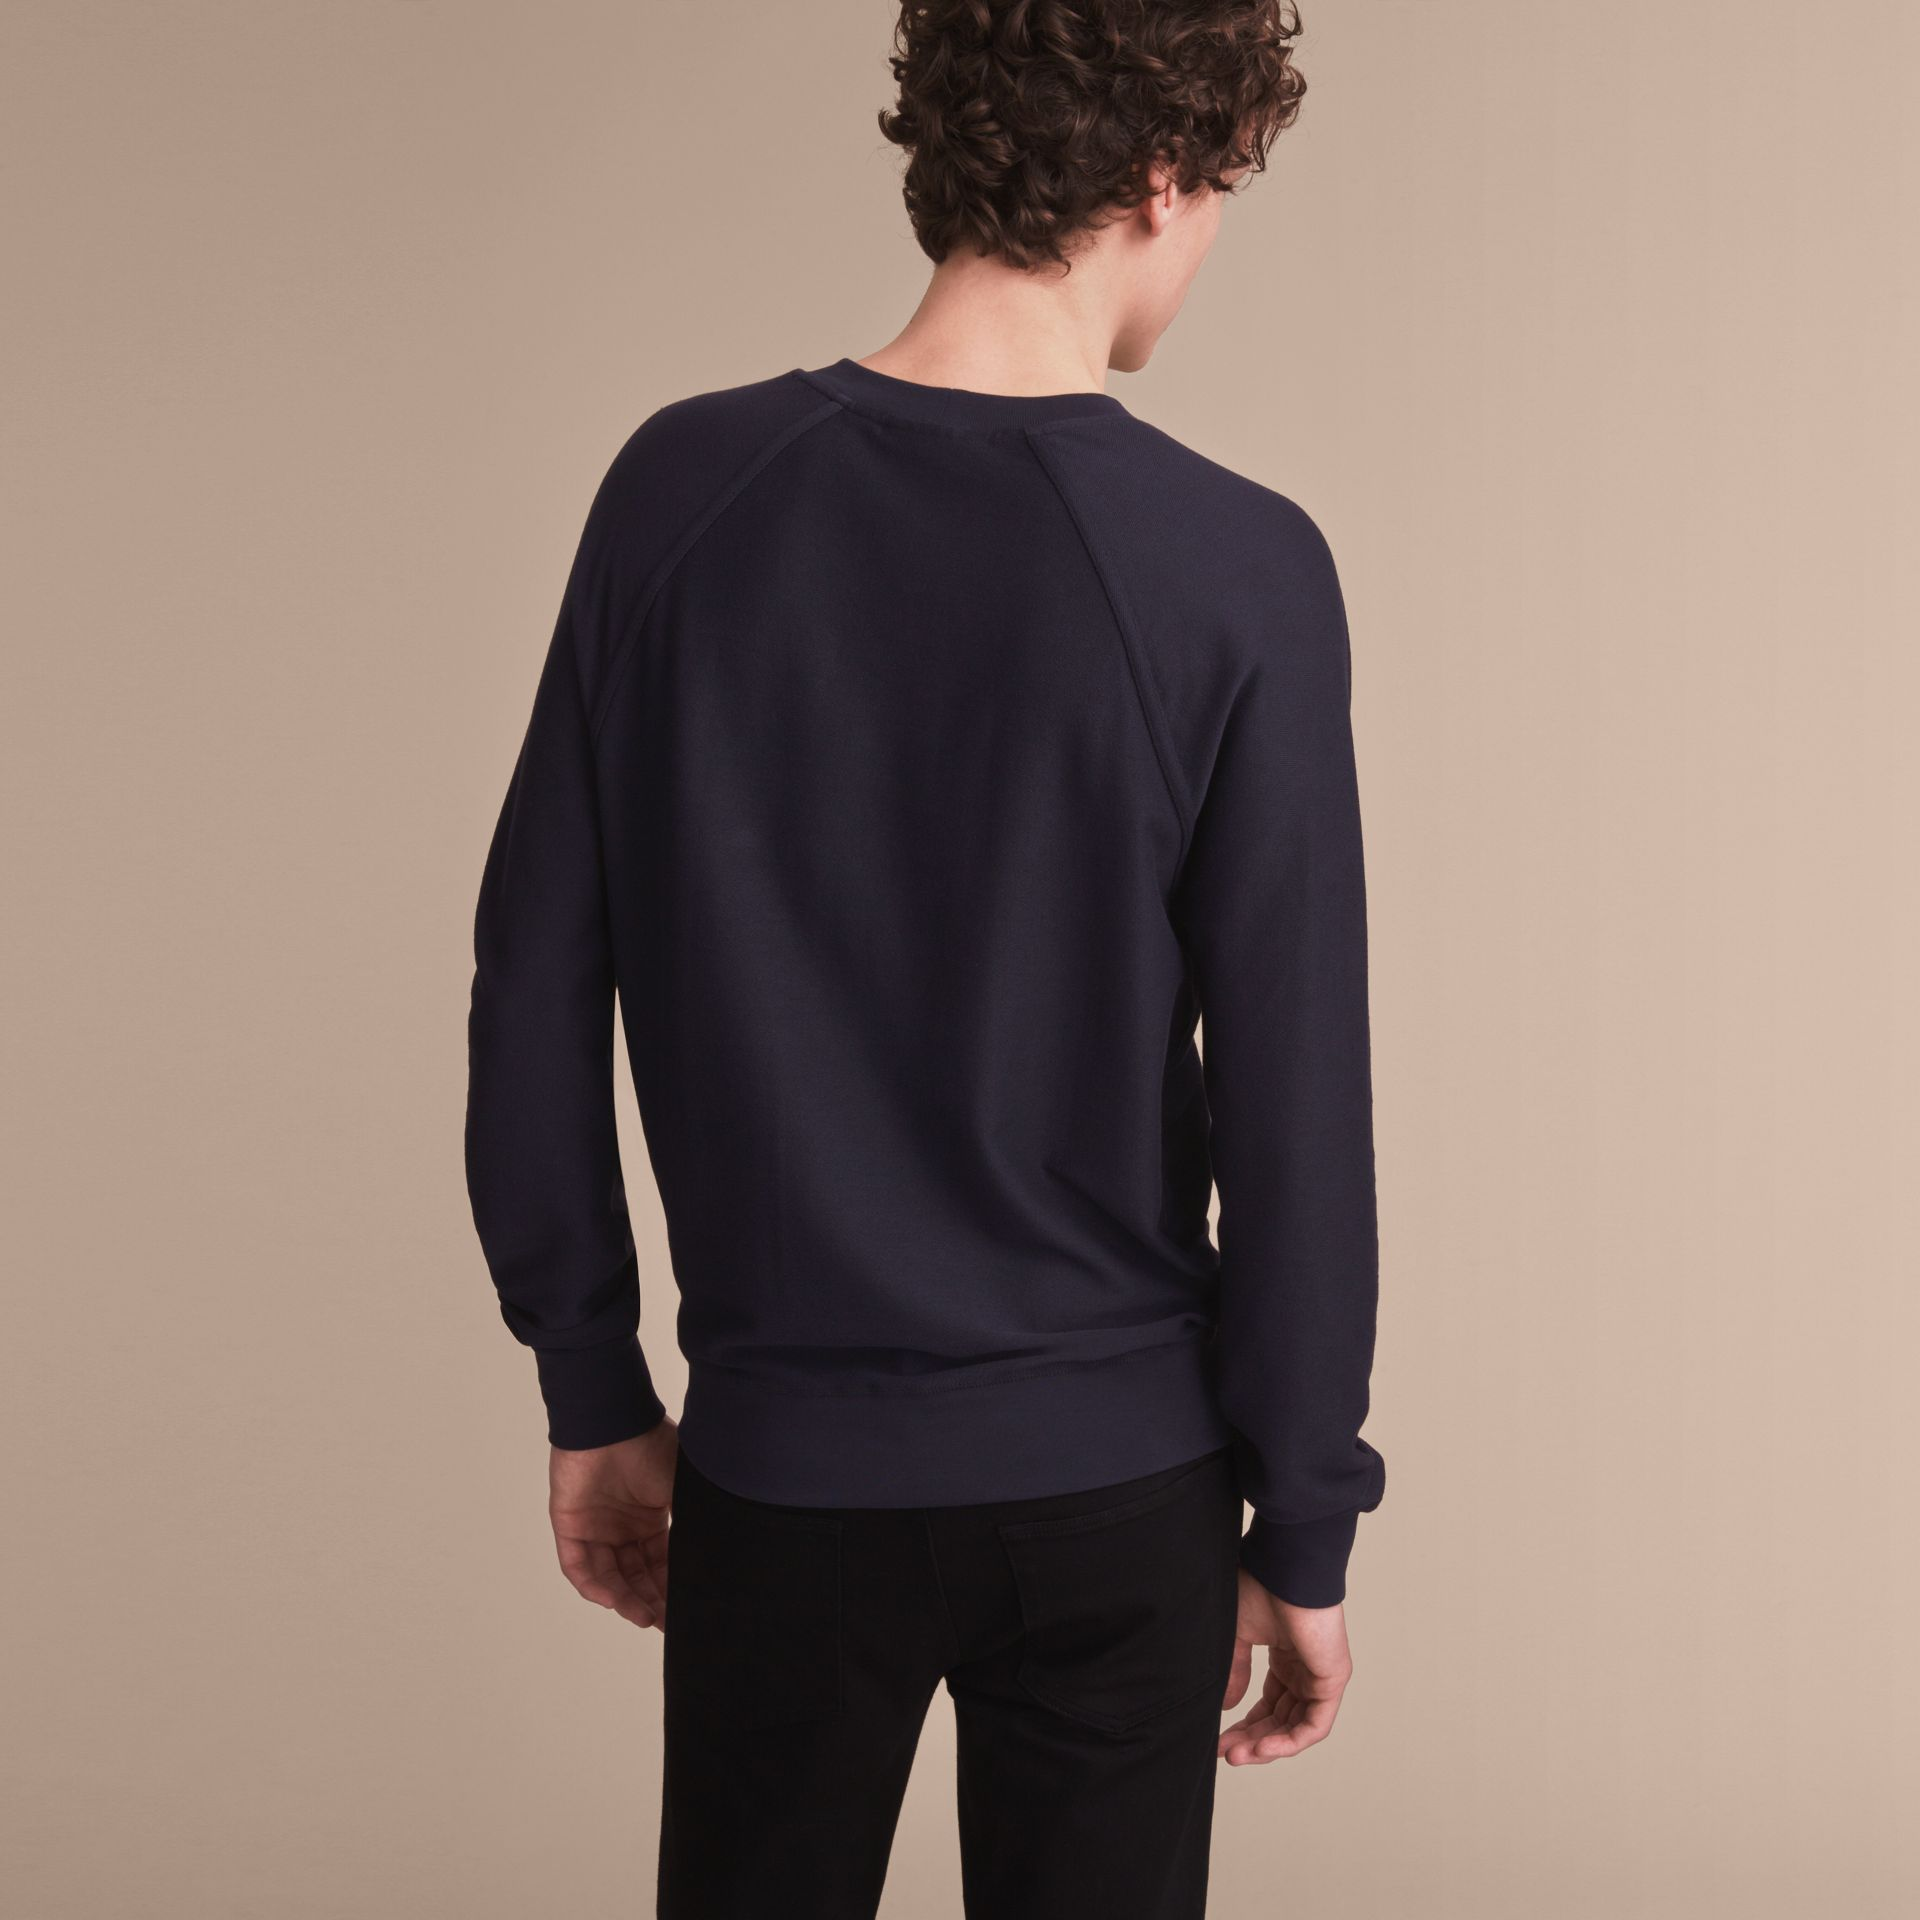 Embroidered Motif Cotton-blend Jersey Sweatshirt in Navy - Men | Burberry - gallery image 3